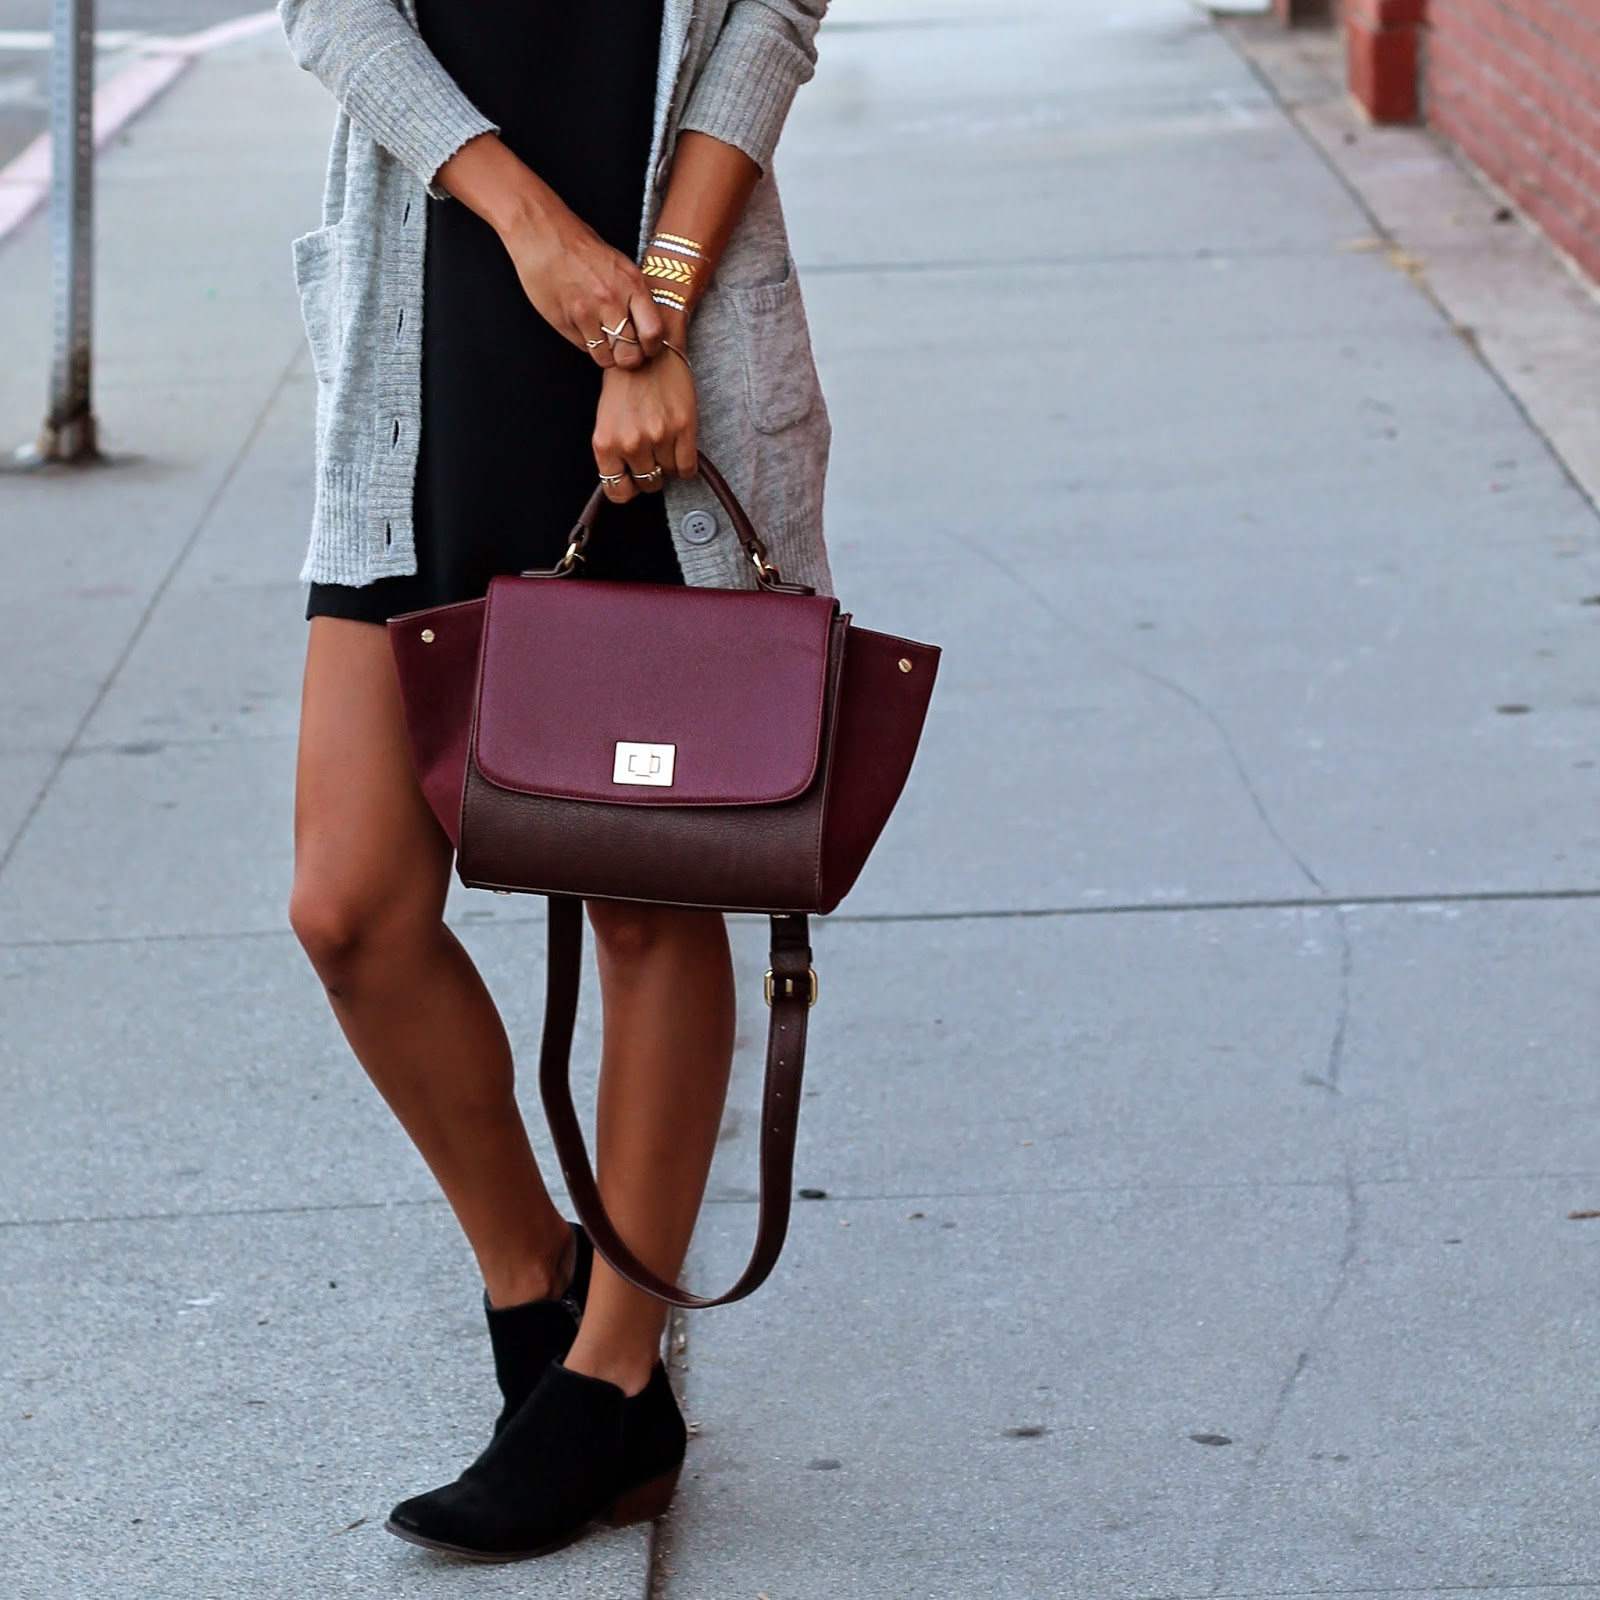 dsw booties, fall fashion, how to layer for fall, LBD, sole society, stylist LA, flash tattoos